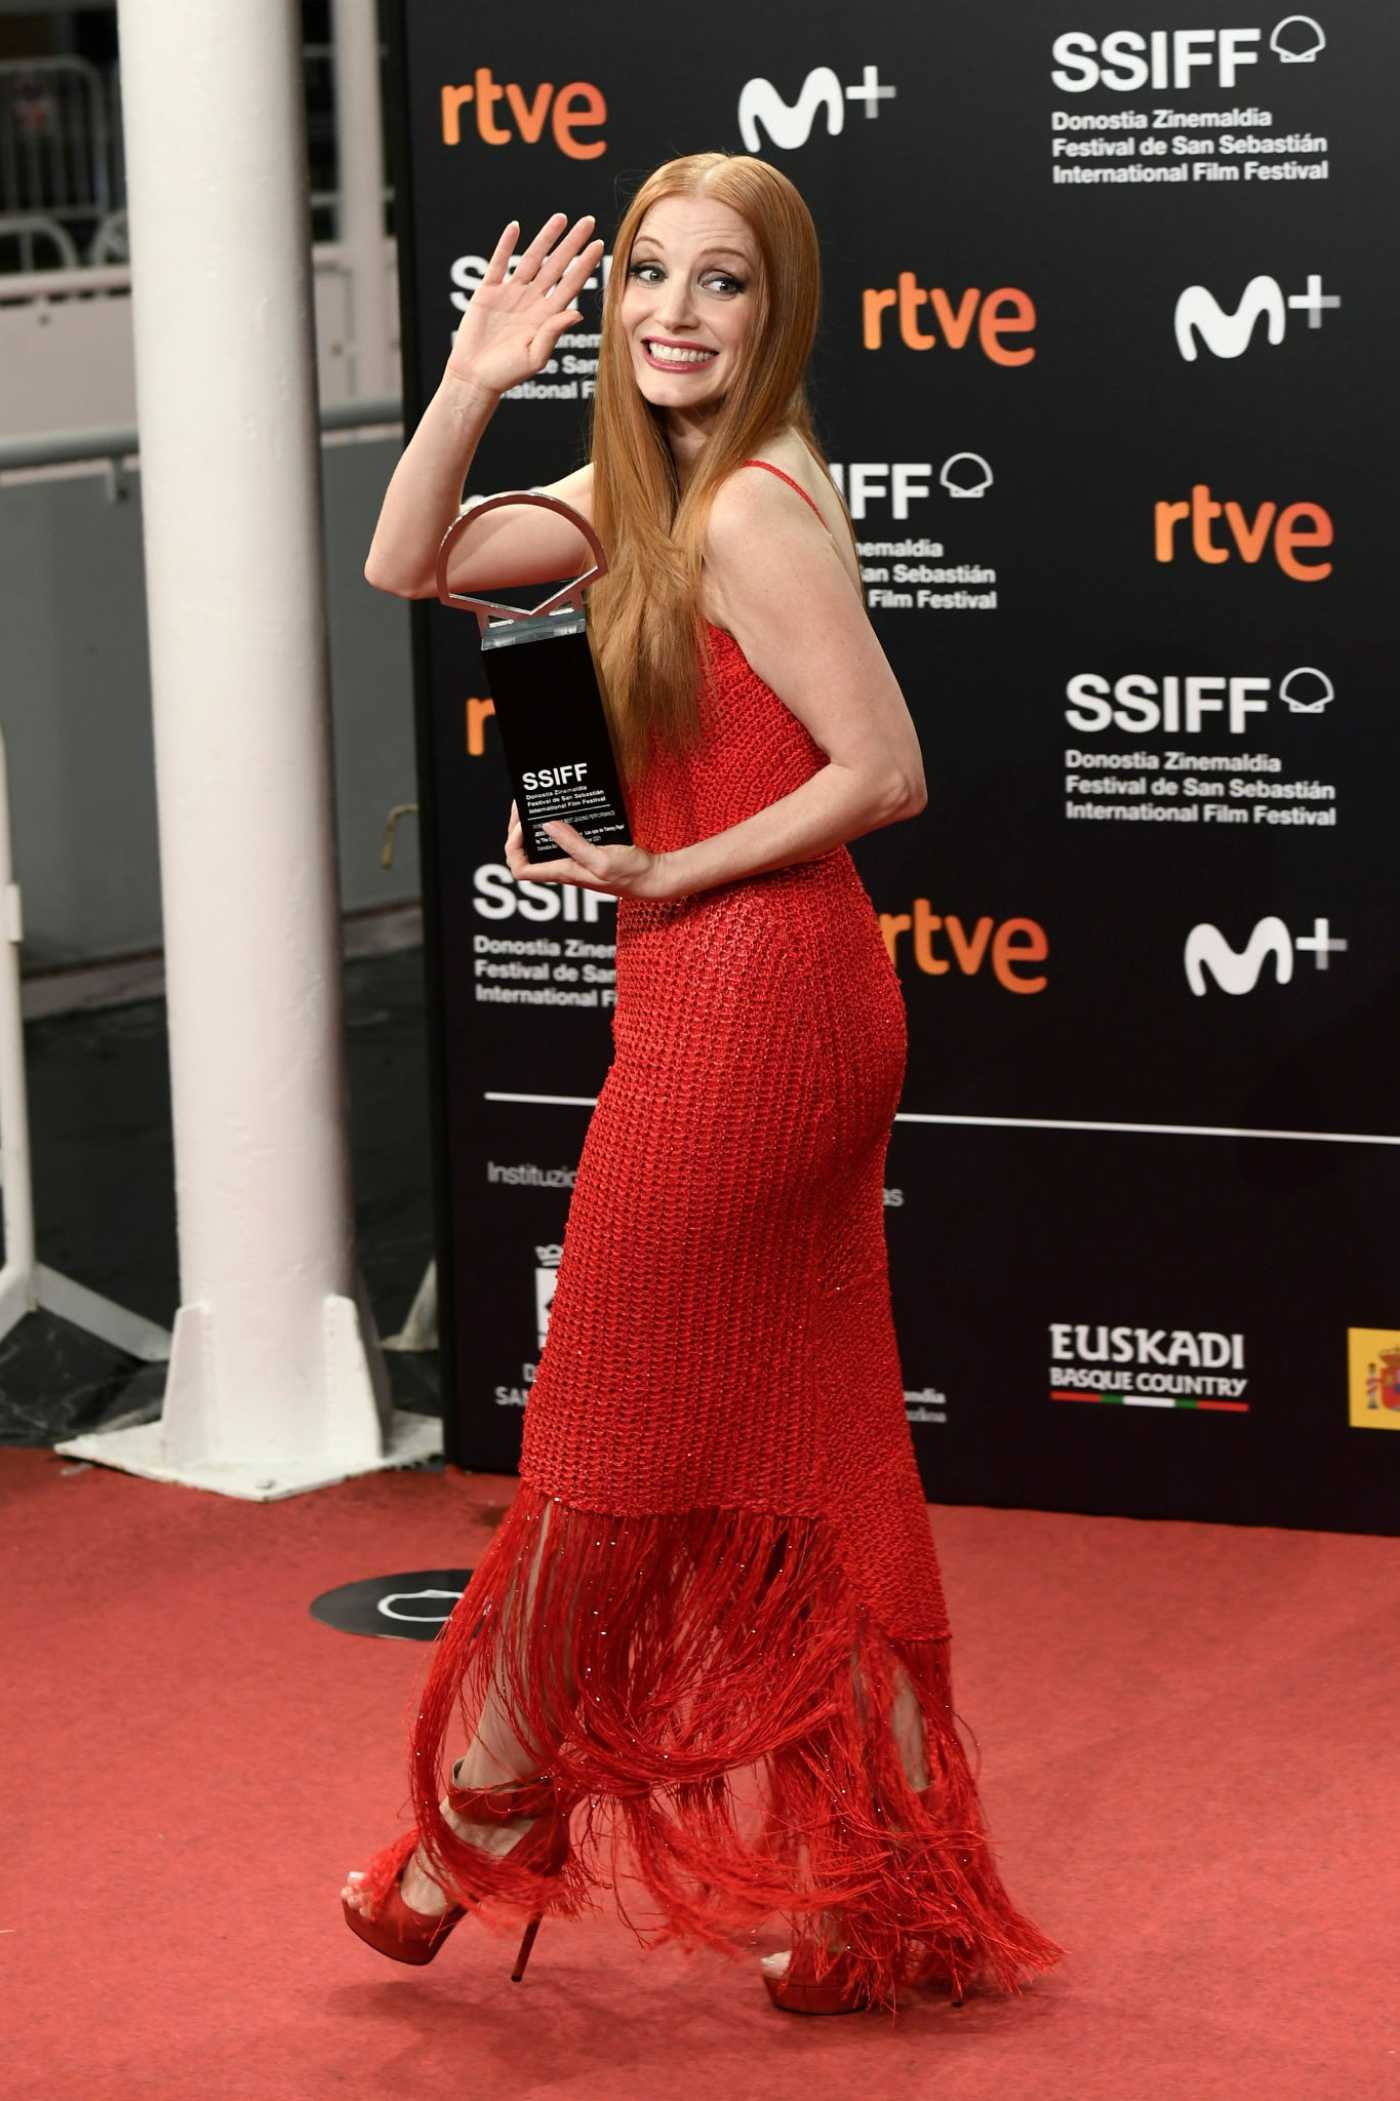 Jessica Chastain in a Red Dress Holds the Silver Shell for Best Leading Performance Award at the Kursaal in San Sebastian 09/25/2021